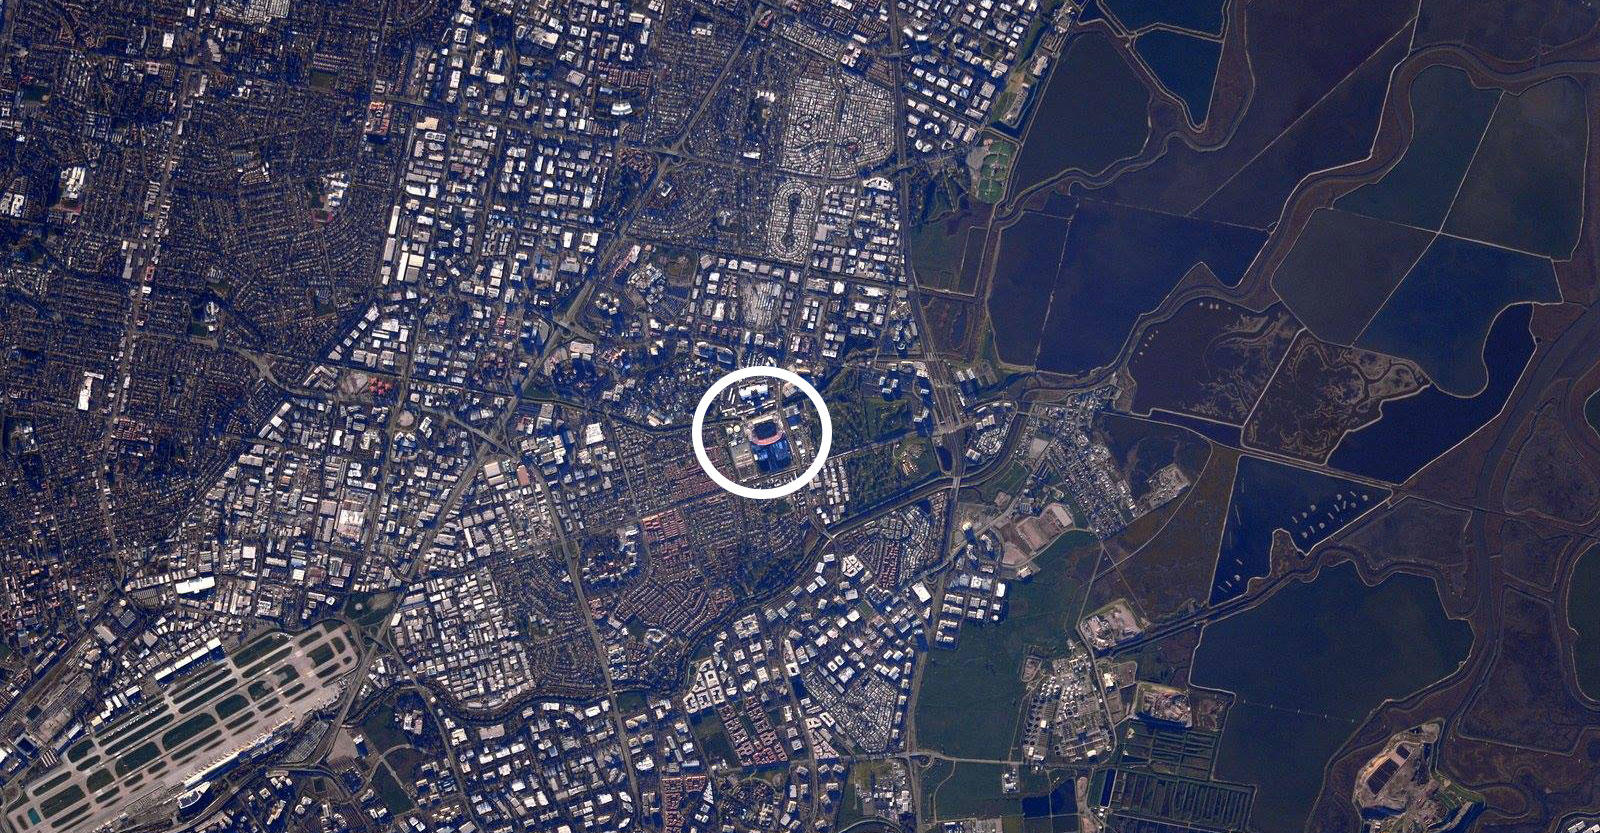 Levi's Stadium from space